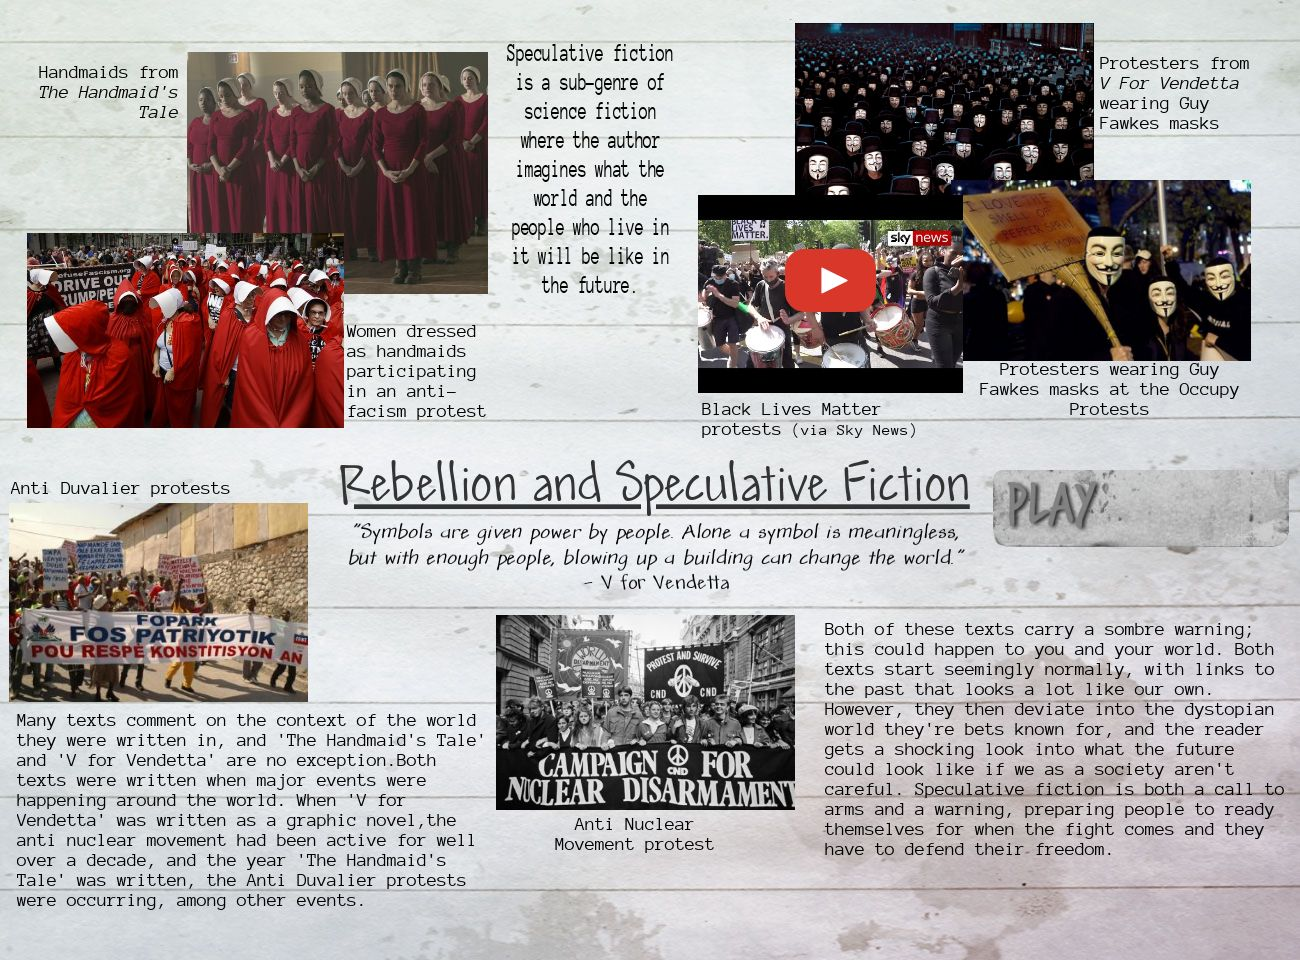 Rebellion and Speculative Fiction